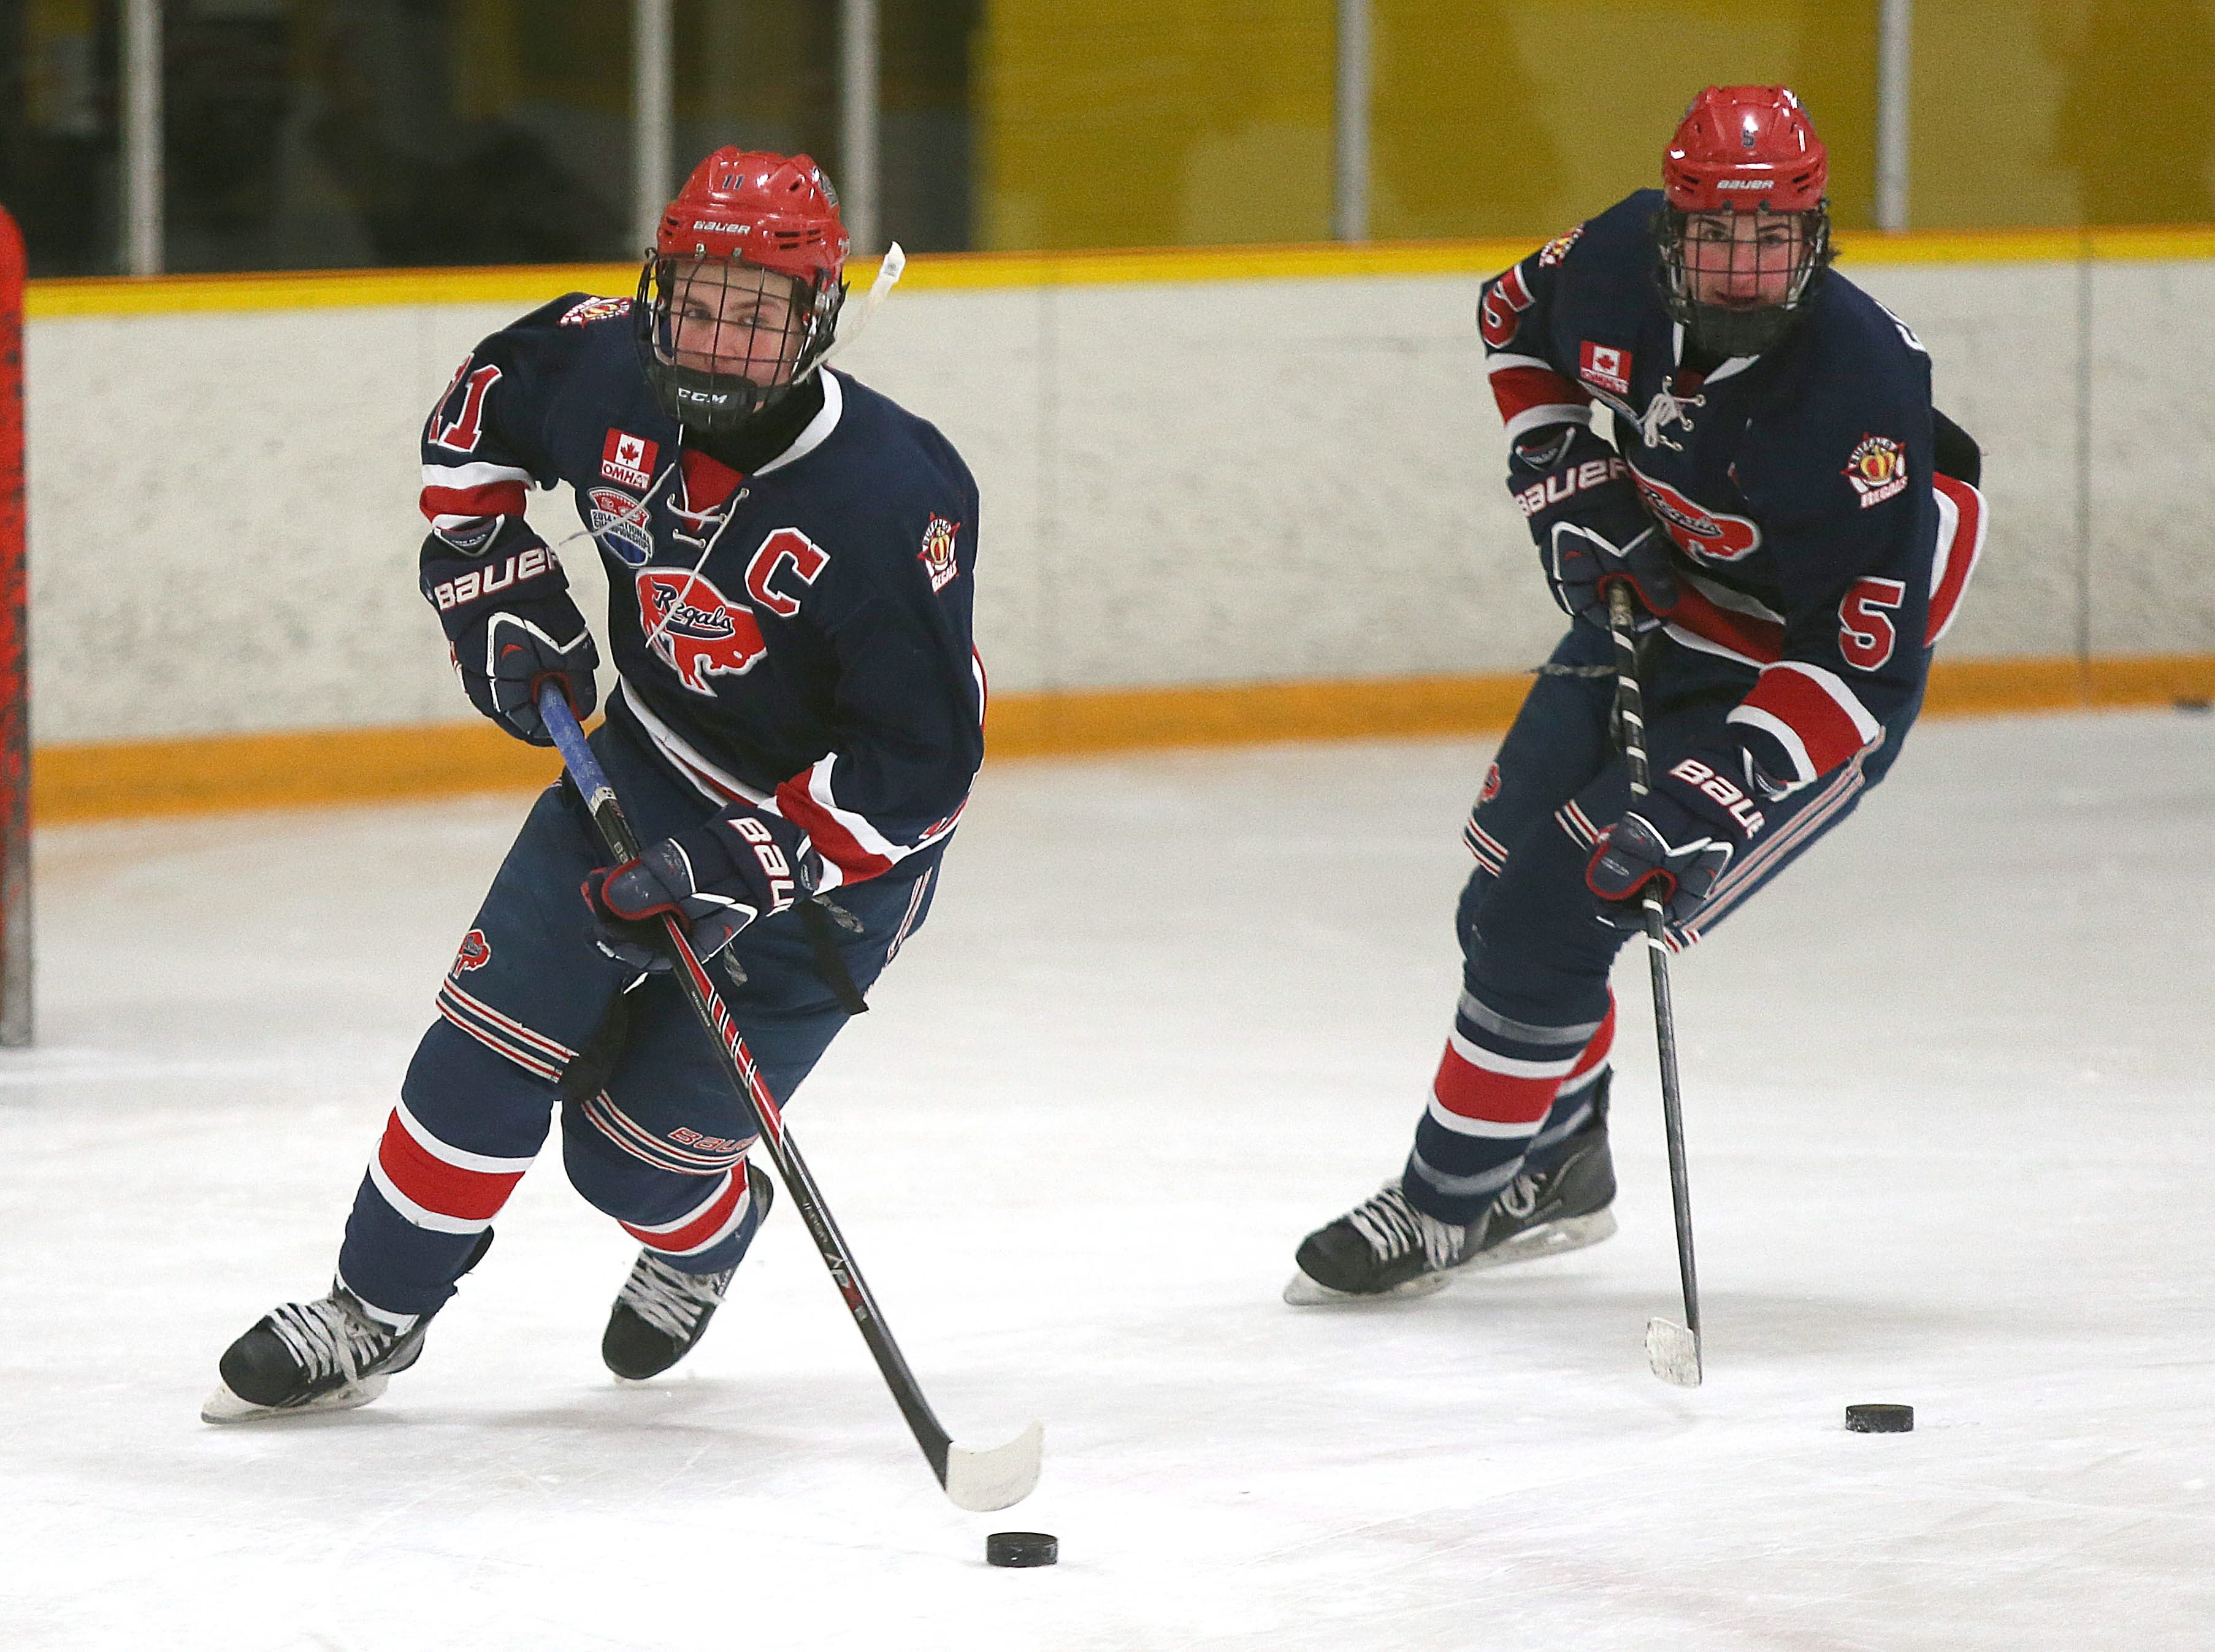 Forward Matthew Gasuik, left,  defenseman Anthony Scanzuso and the Buffalo Regals look to keep the good times rolling in Green Bay at the USA Hockey Championships.